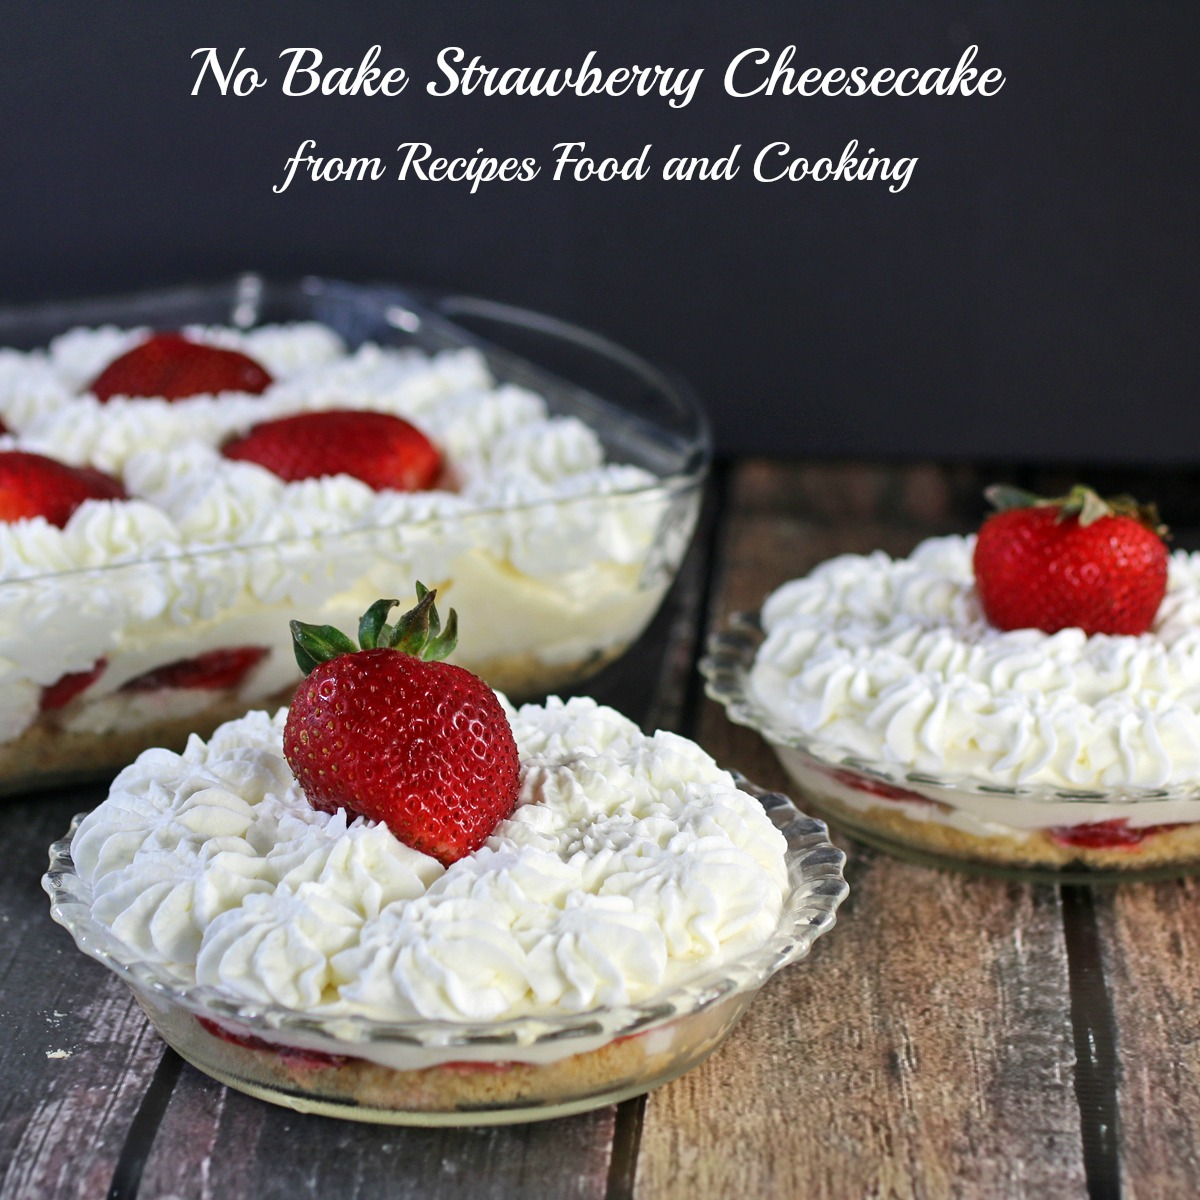 No Bake Strawberry Cheesecake - Princess Pinky Girl